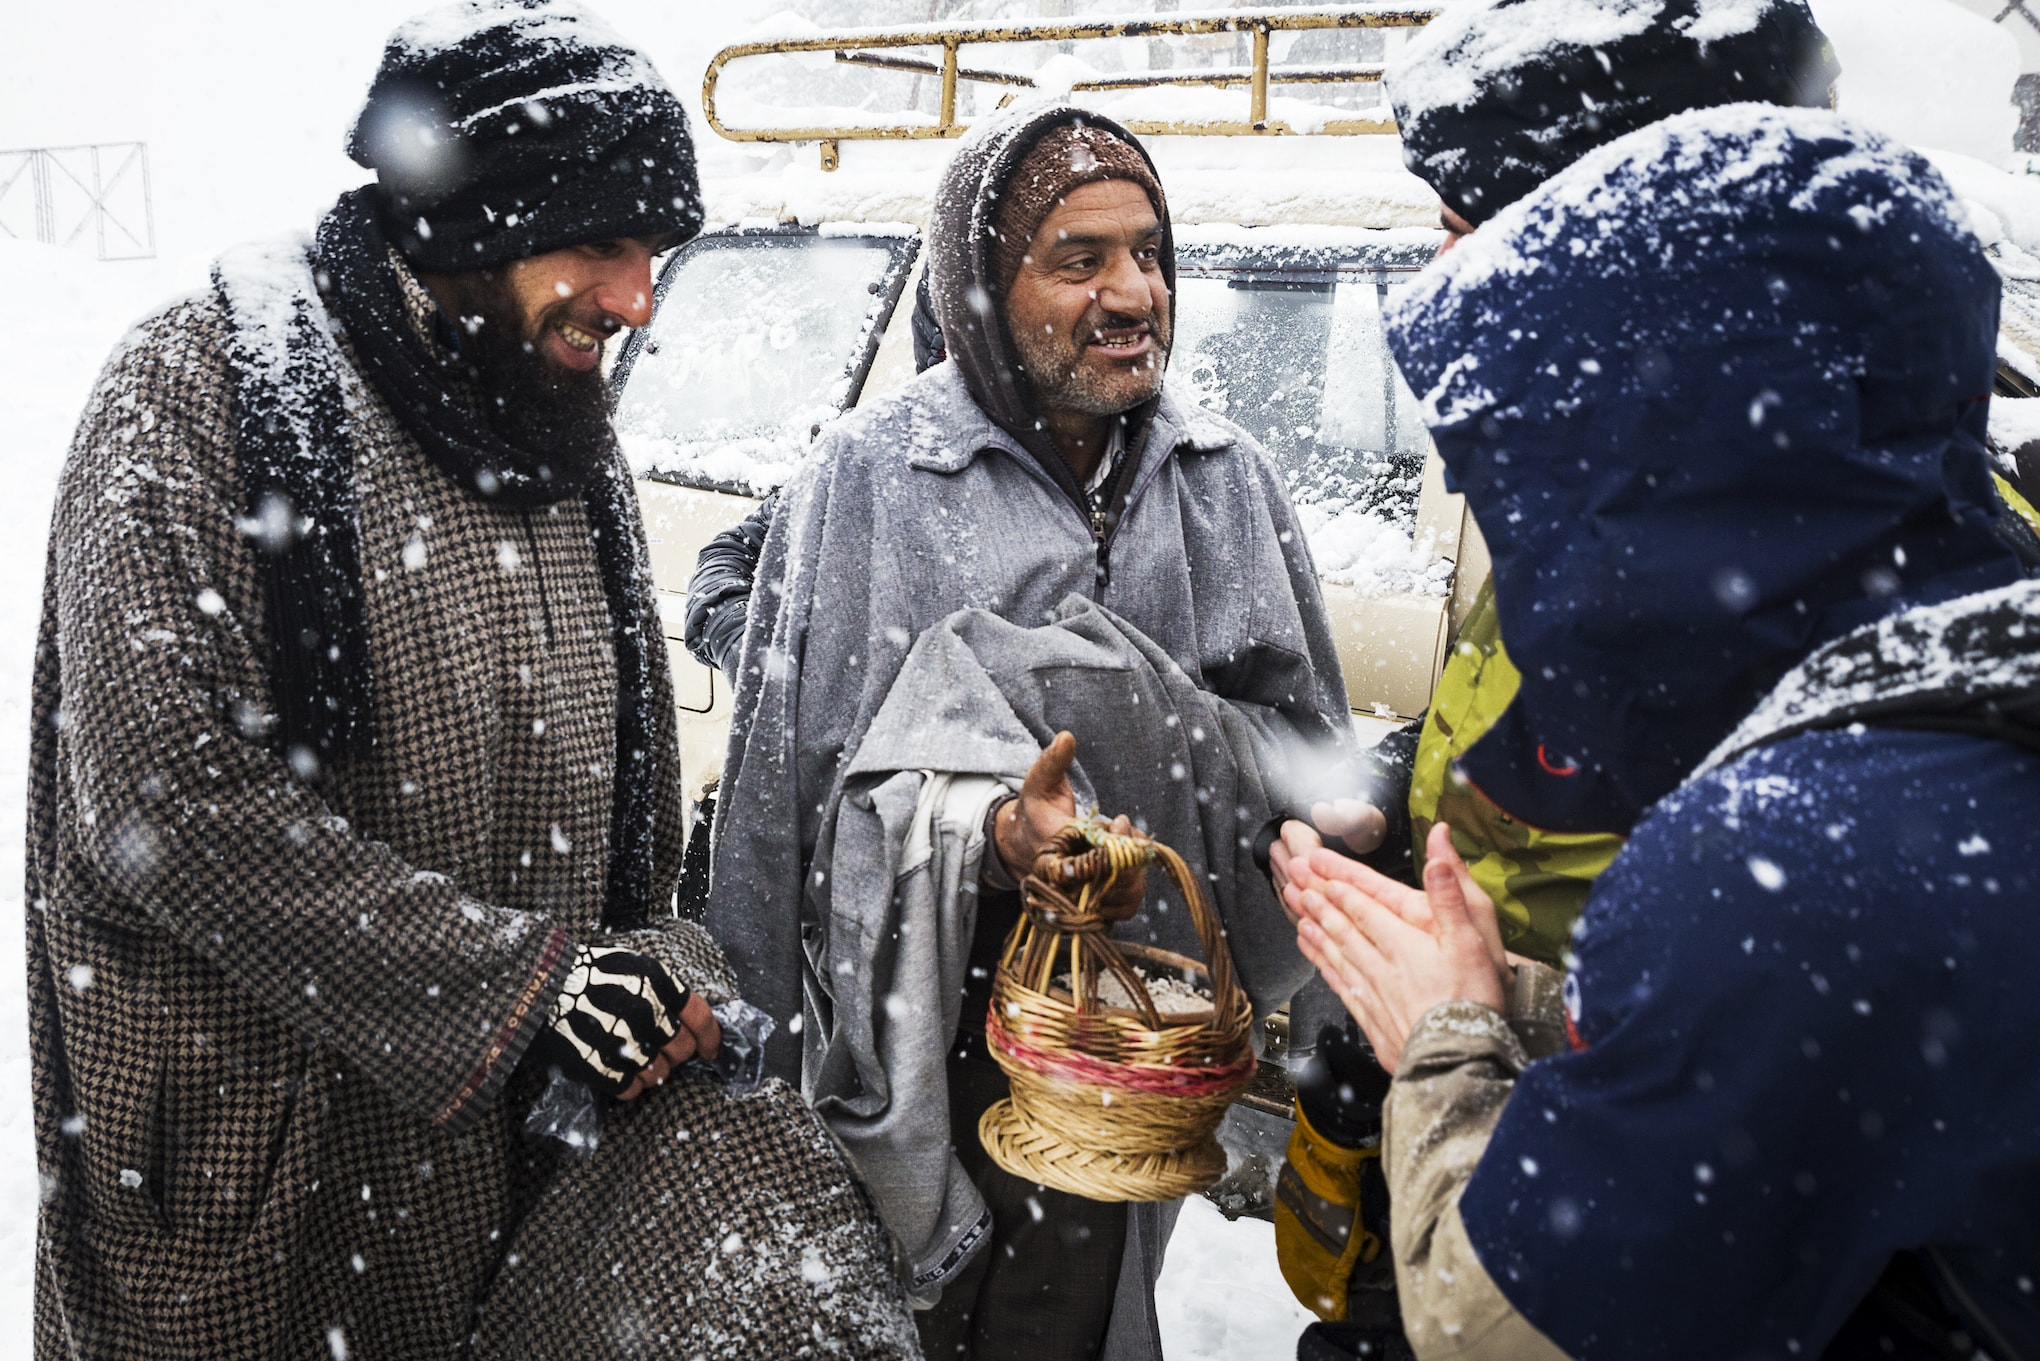 Locals staying warm in Gulmarg